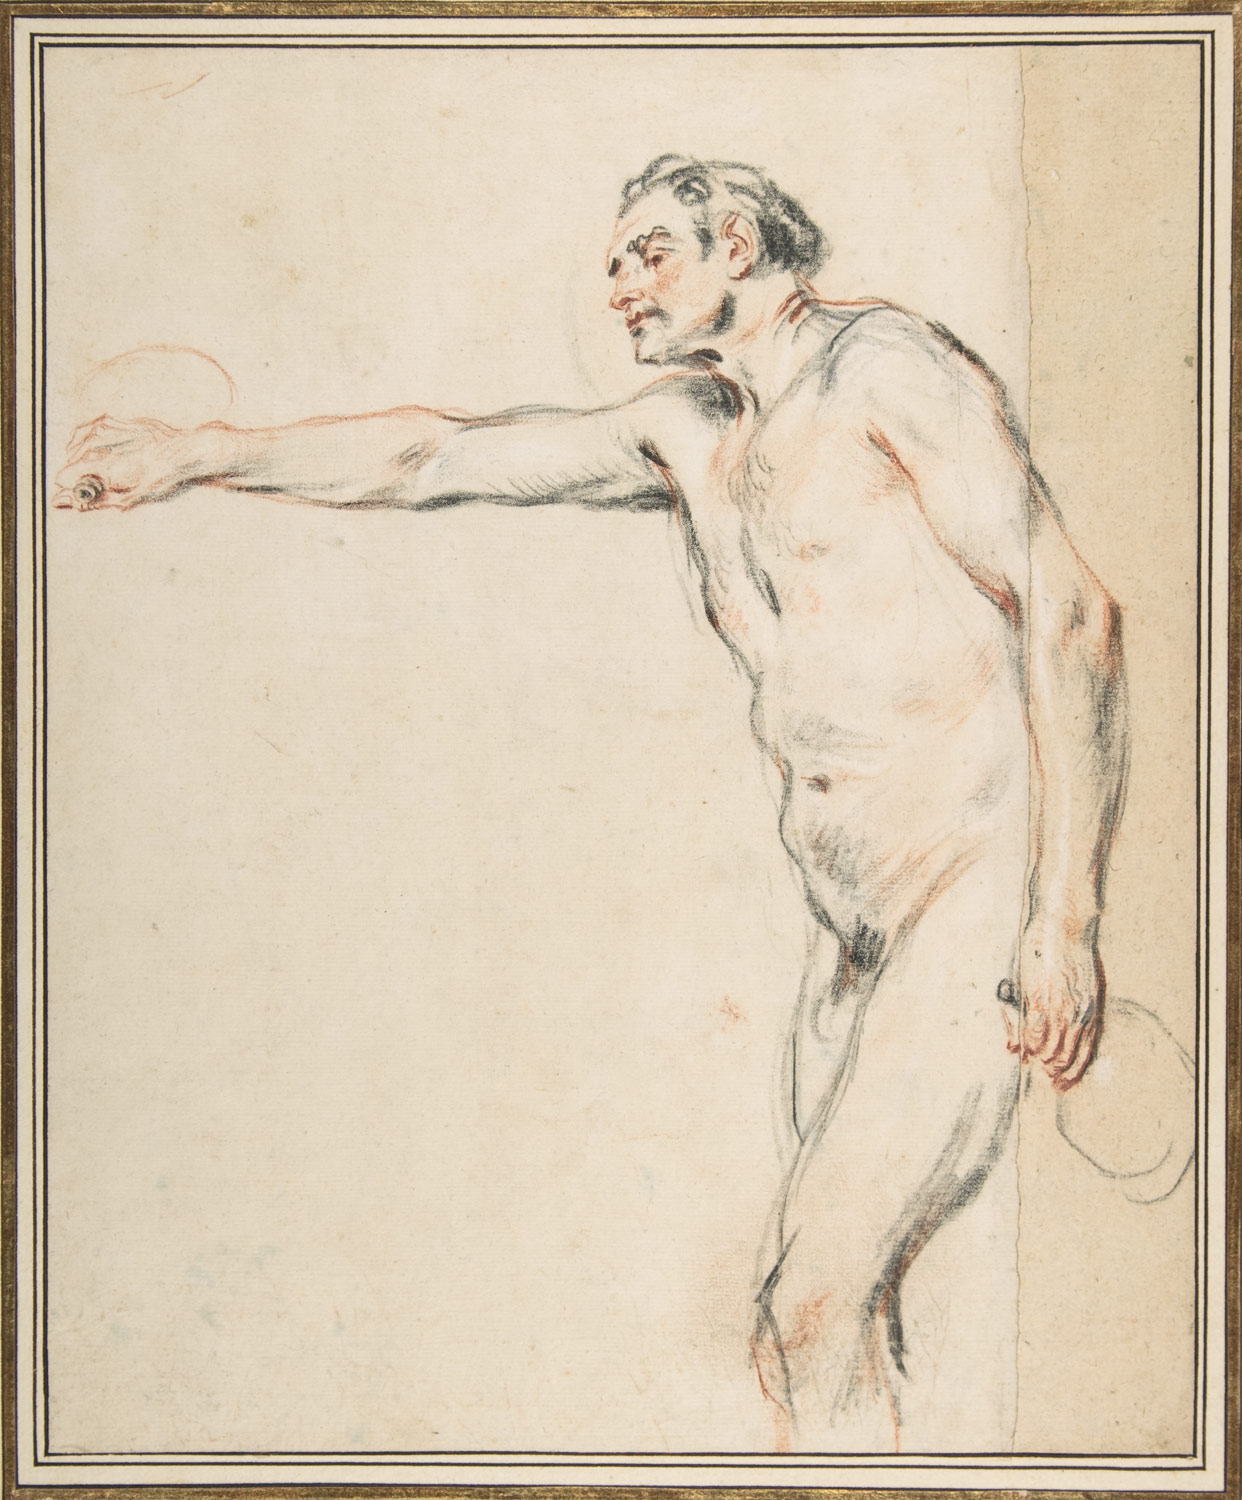 Sketch nude holding